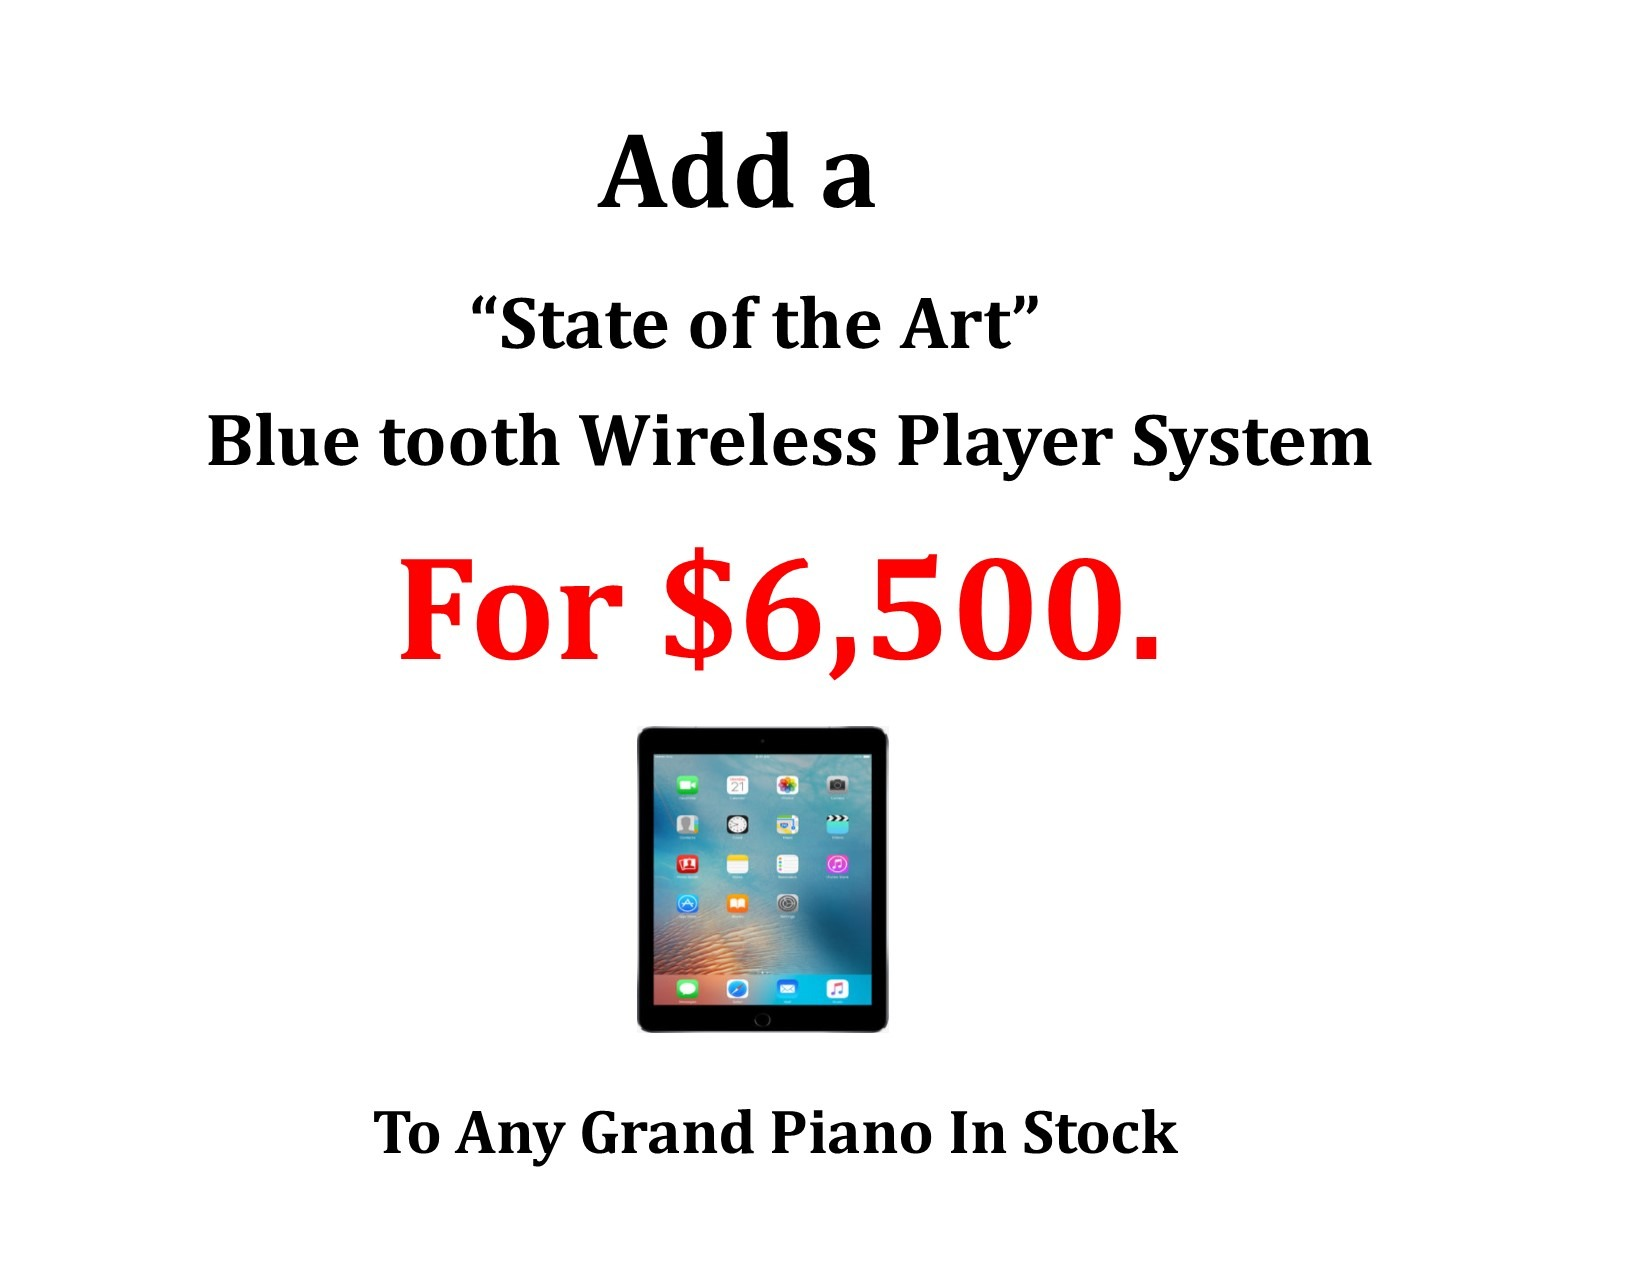 """12898-<br><font color=""""black""""><b> Add A """"State of the Art"""" Wireless Player for $6,500. to Any Grand Piano In Stock!</b></font>"""